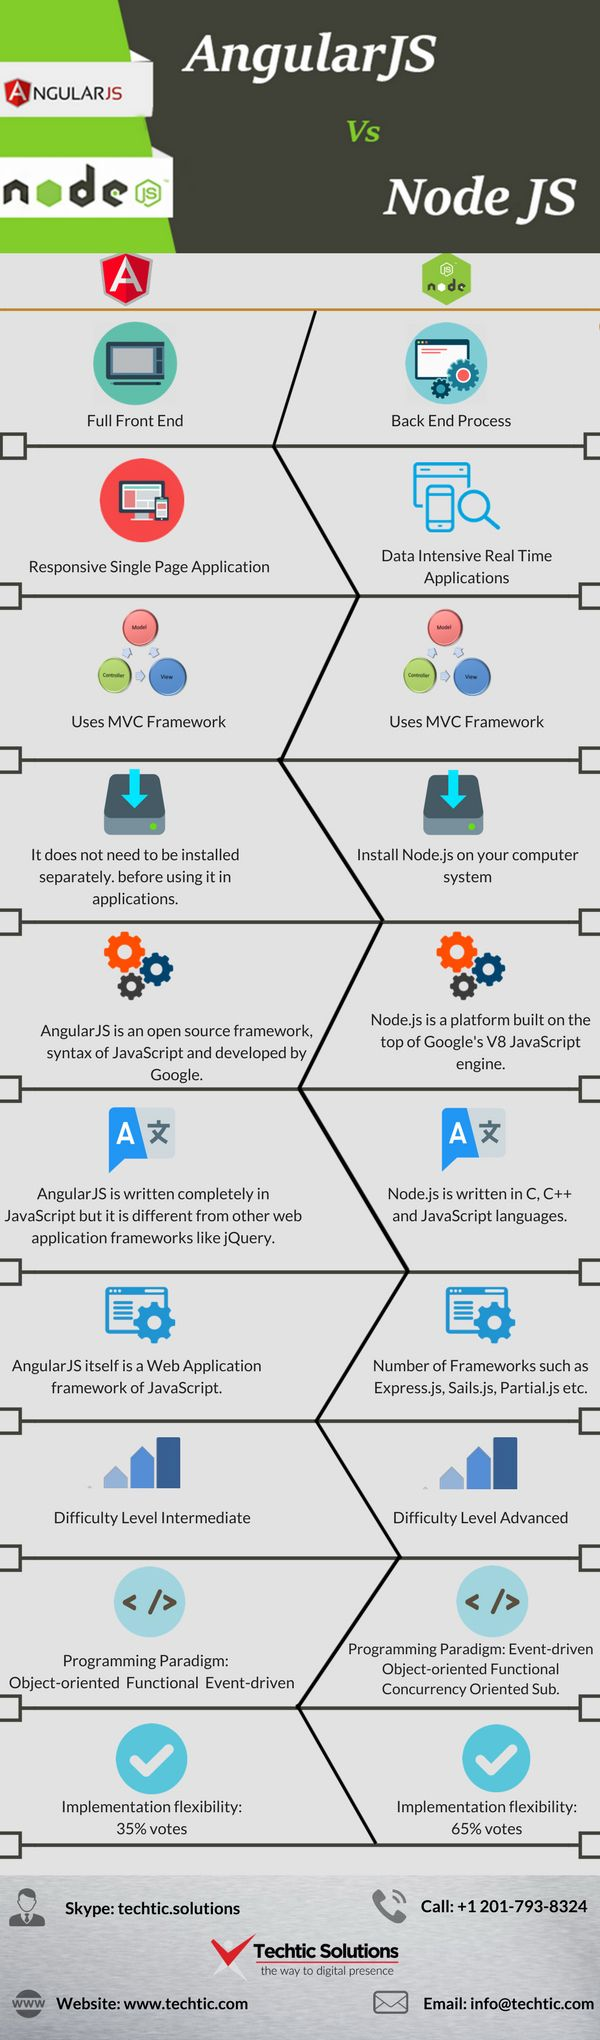 Difference between AngularJS Vs NodeJS – If you want more information about AngularJS and Node.JS then call us @ +1 201-793-8324 or visit us @ https://www.techtic.com/angularjs-development-company/  #AngularJSDevelopmentCompany #NodeJSDevelopmentCompany #HireAngularJSDeveloper #HireNodeJSDeveloper #AngularJSDevelopment #NodeJSDevelopment #AngularJSDevelopmentServices #NodeJSDevelopmentServices